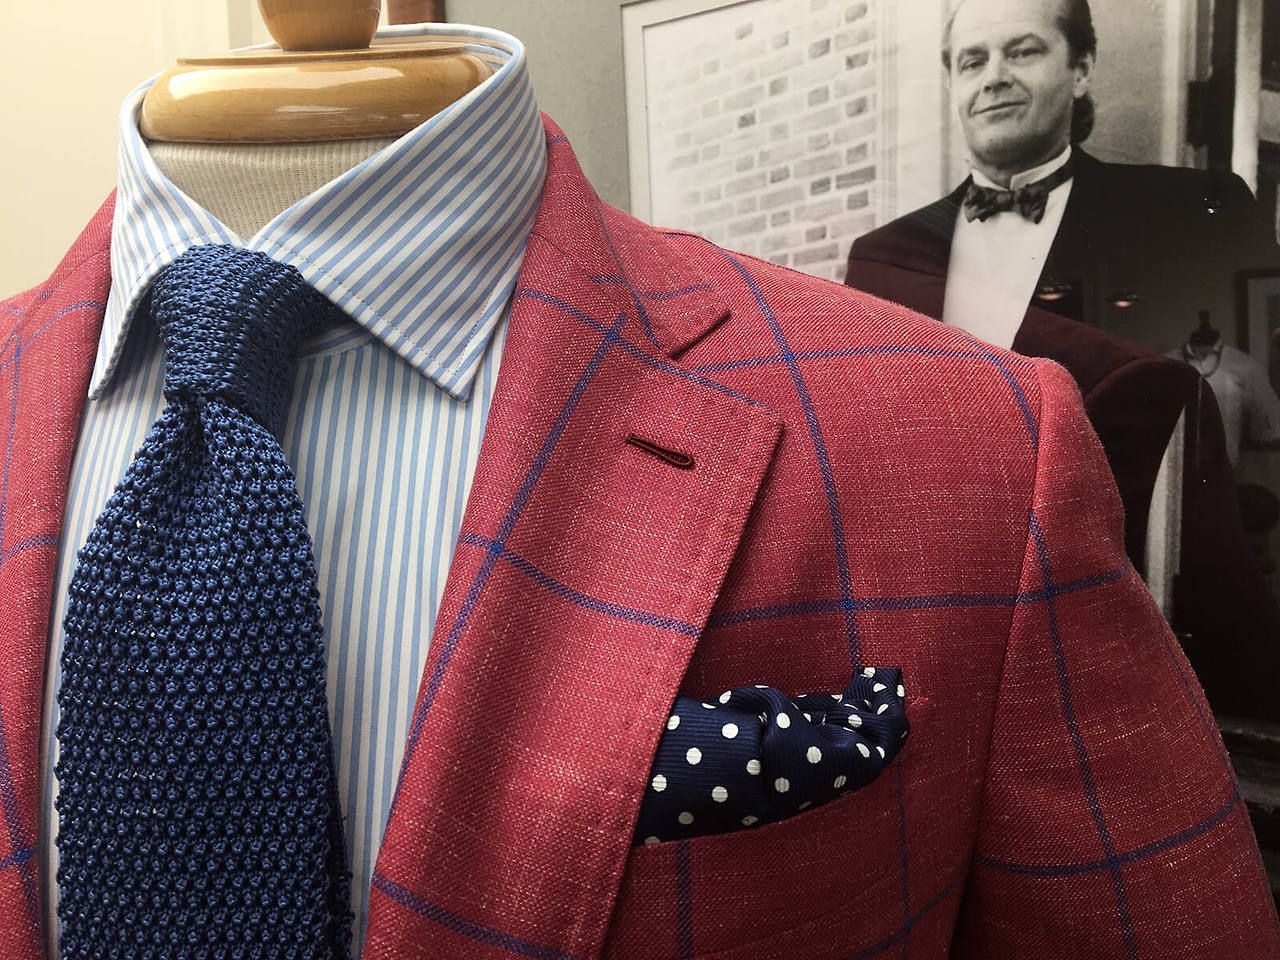 """70d767511da1 wmkingclothiers: """"Our Version of Casual Friday It's time to dress up again.  Sport coat – Nikky Shirt – Peter Millar Knit tie – Robert Jensen Pocket  square ..."""